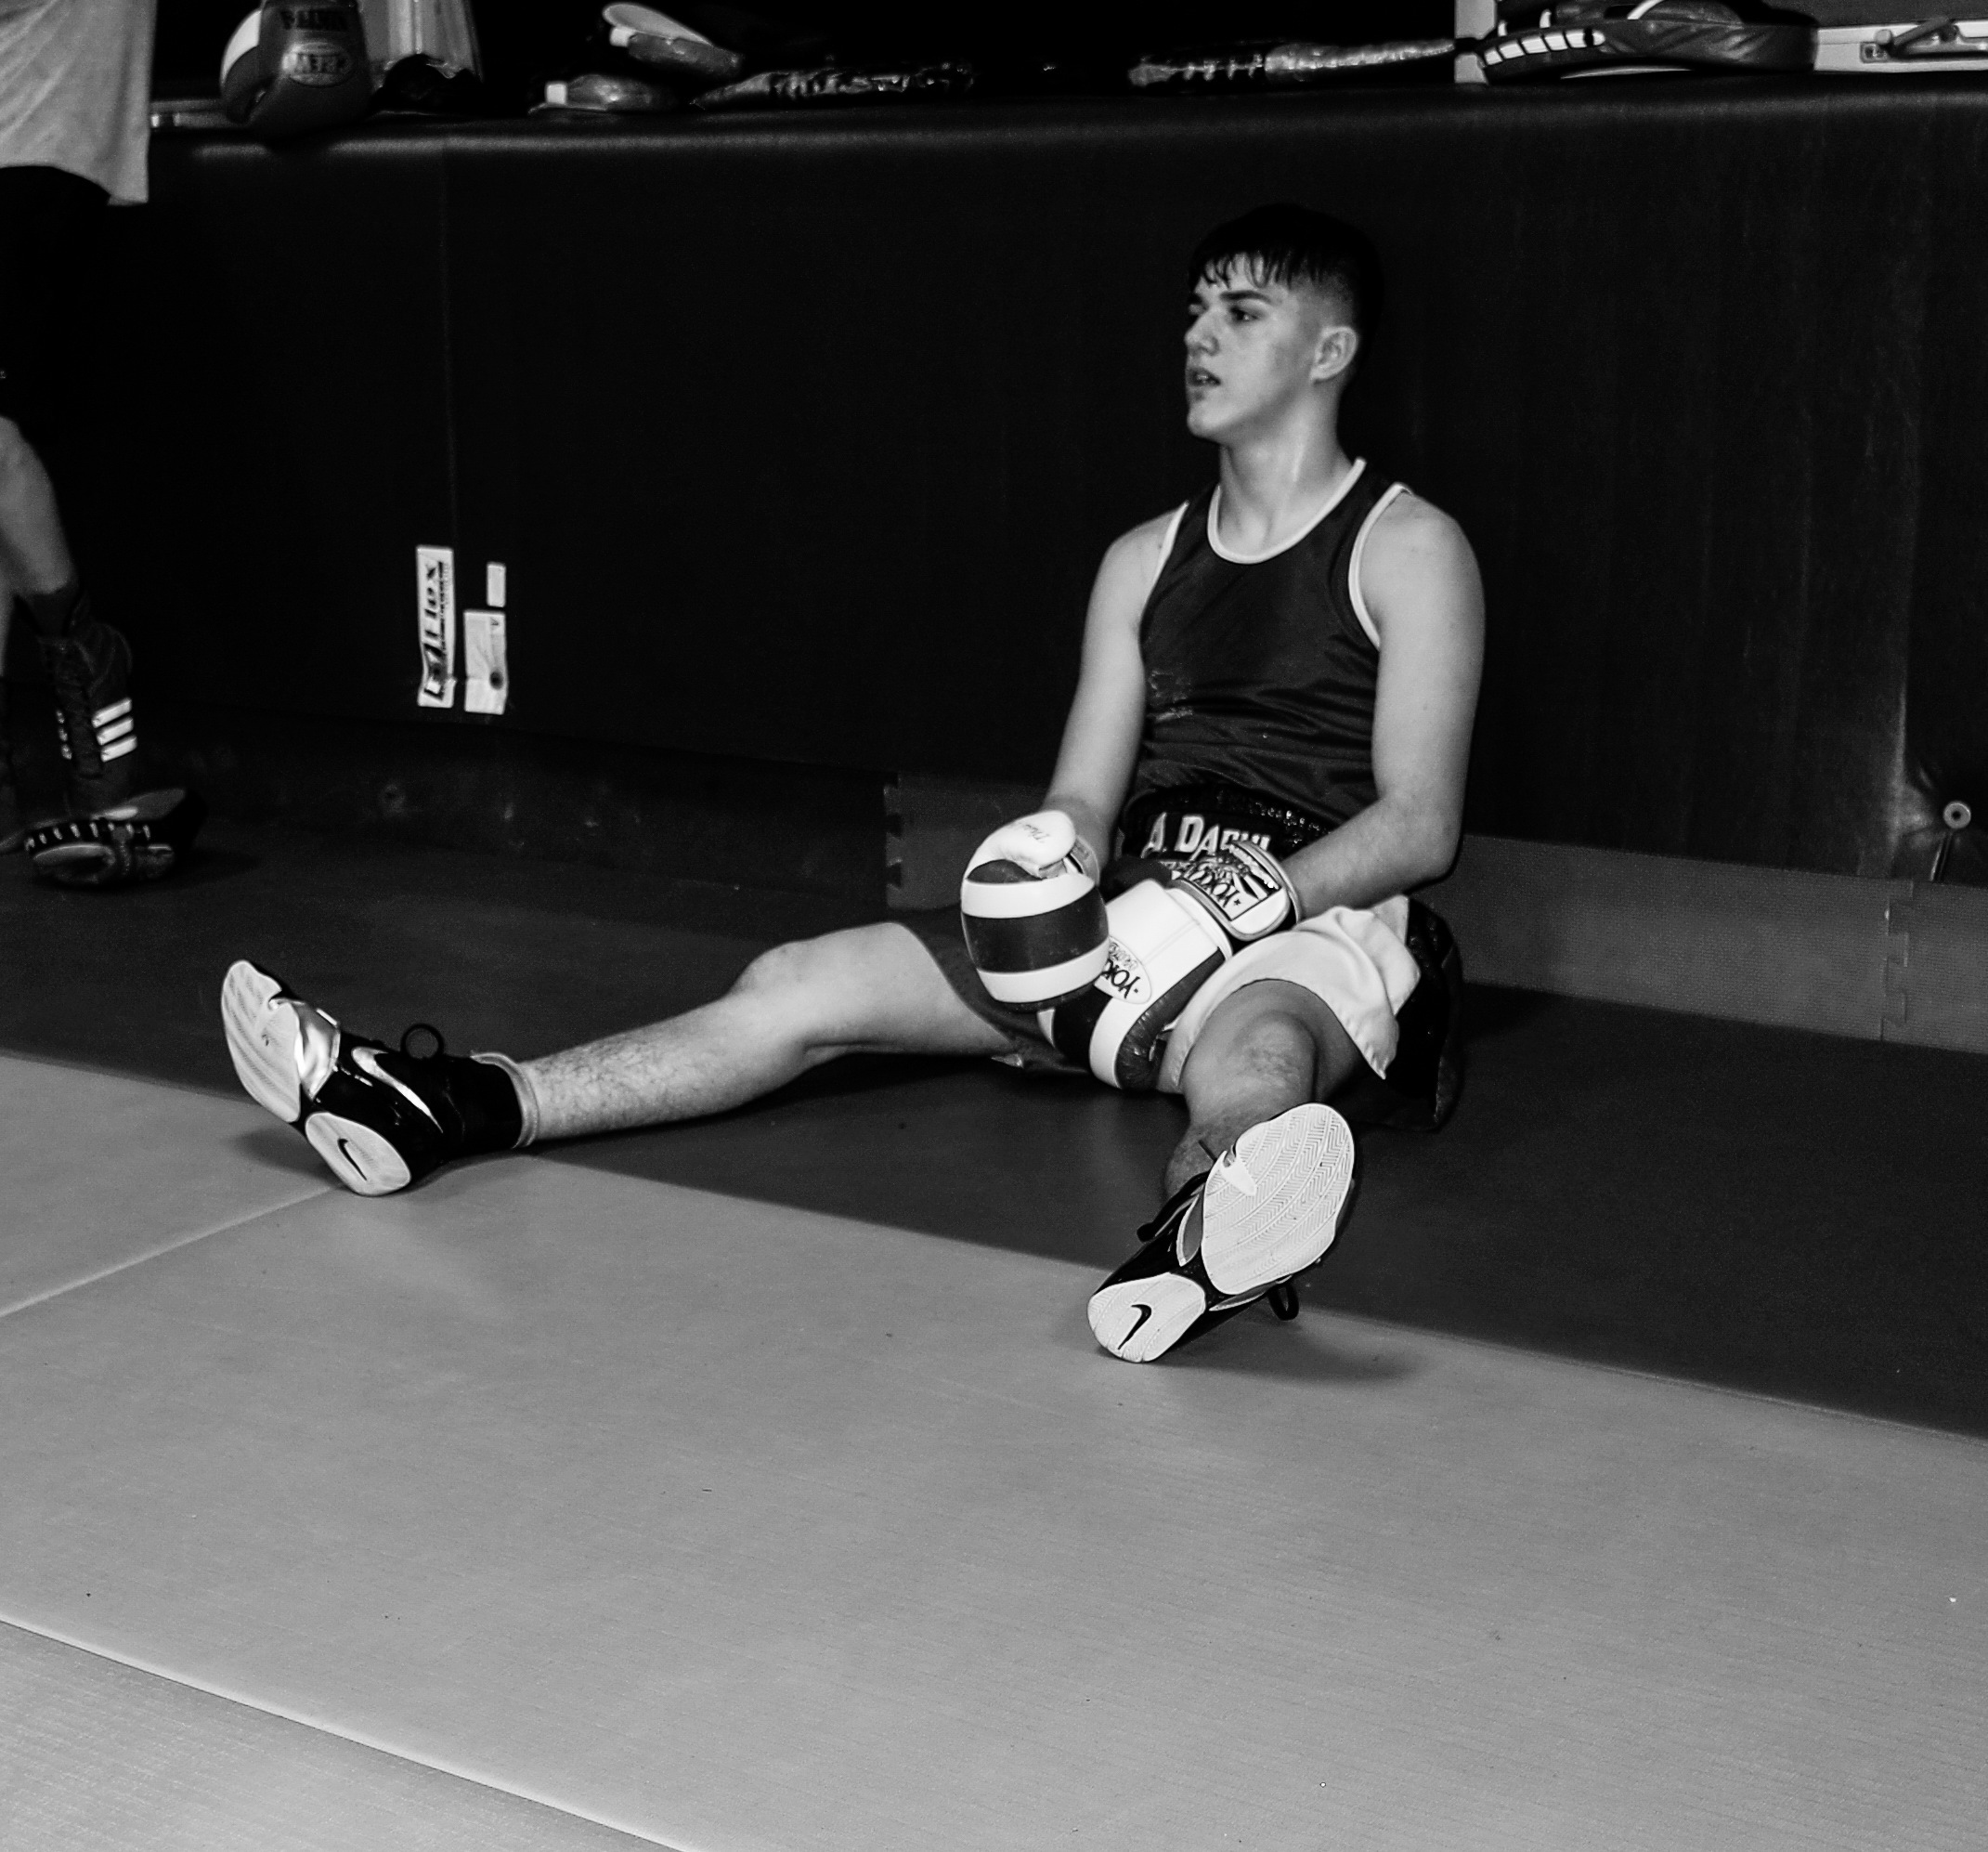 the struggle for legality regulation and safety in youth mma